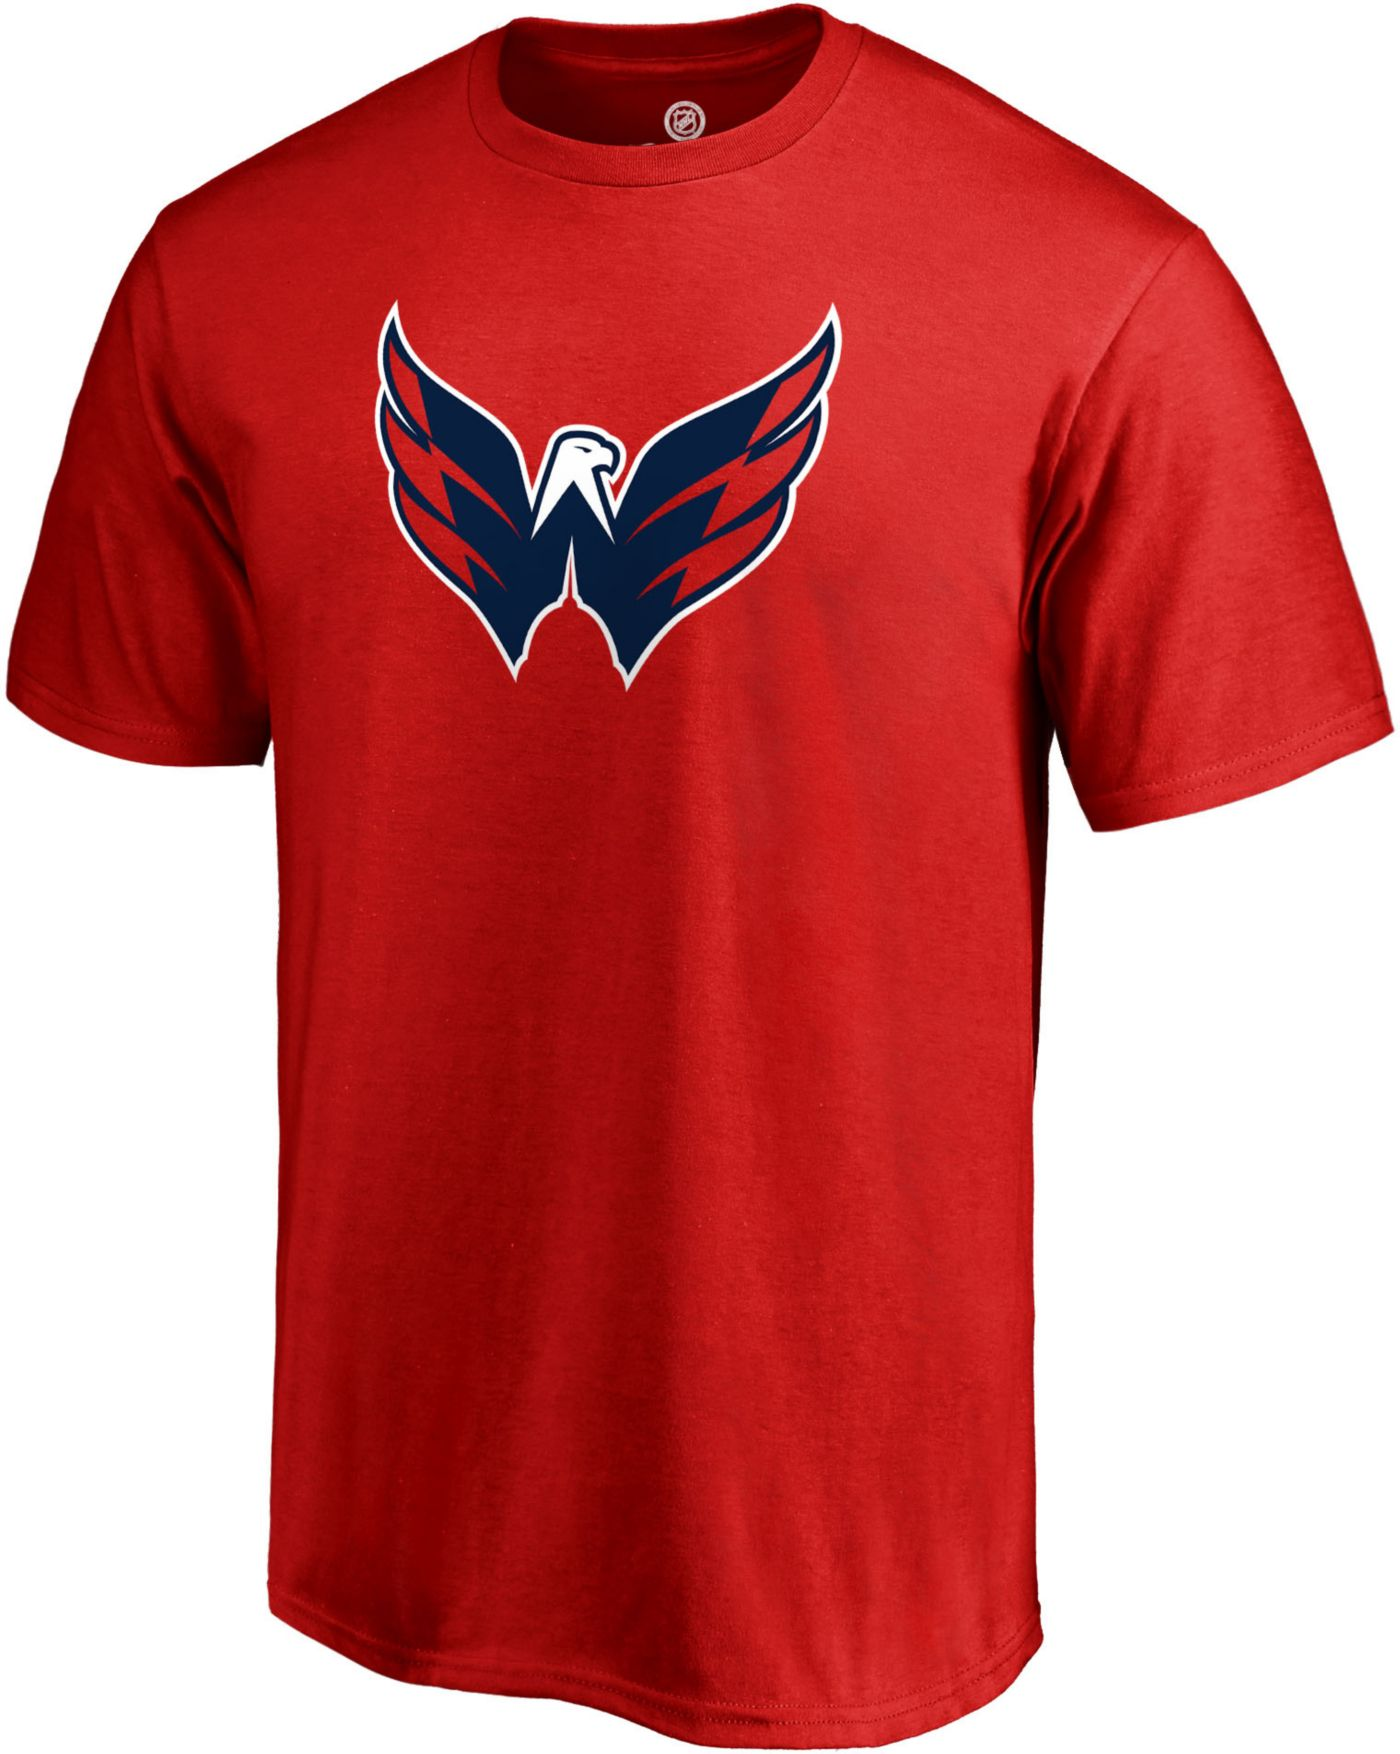 NHL Men's Washington Capitals Big Logo Red T-Shirt